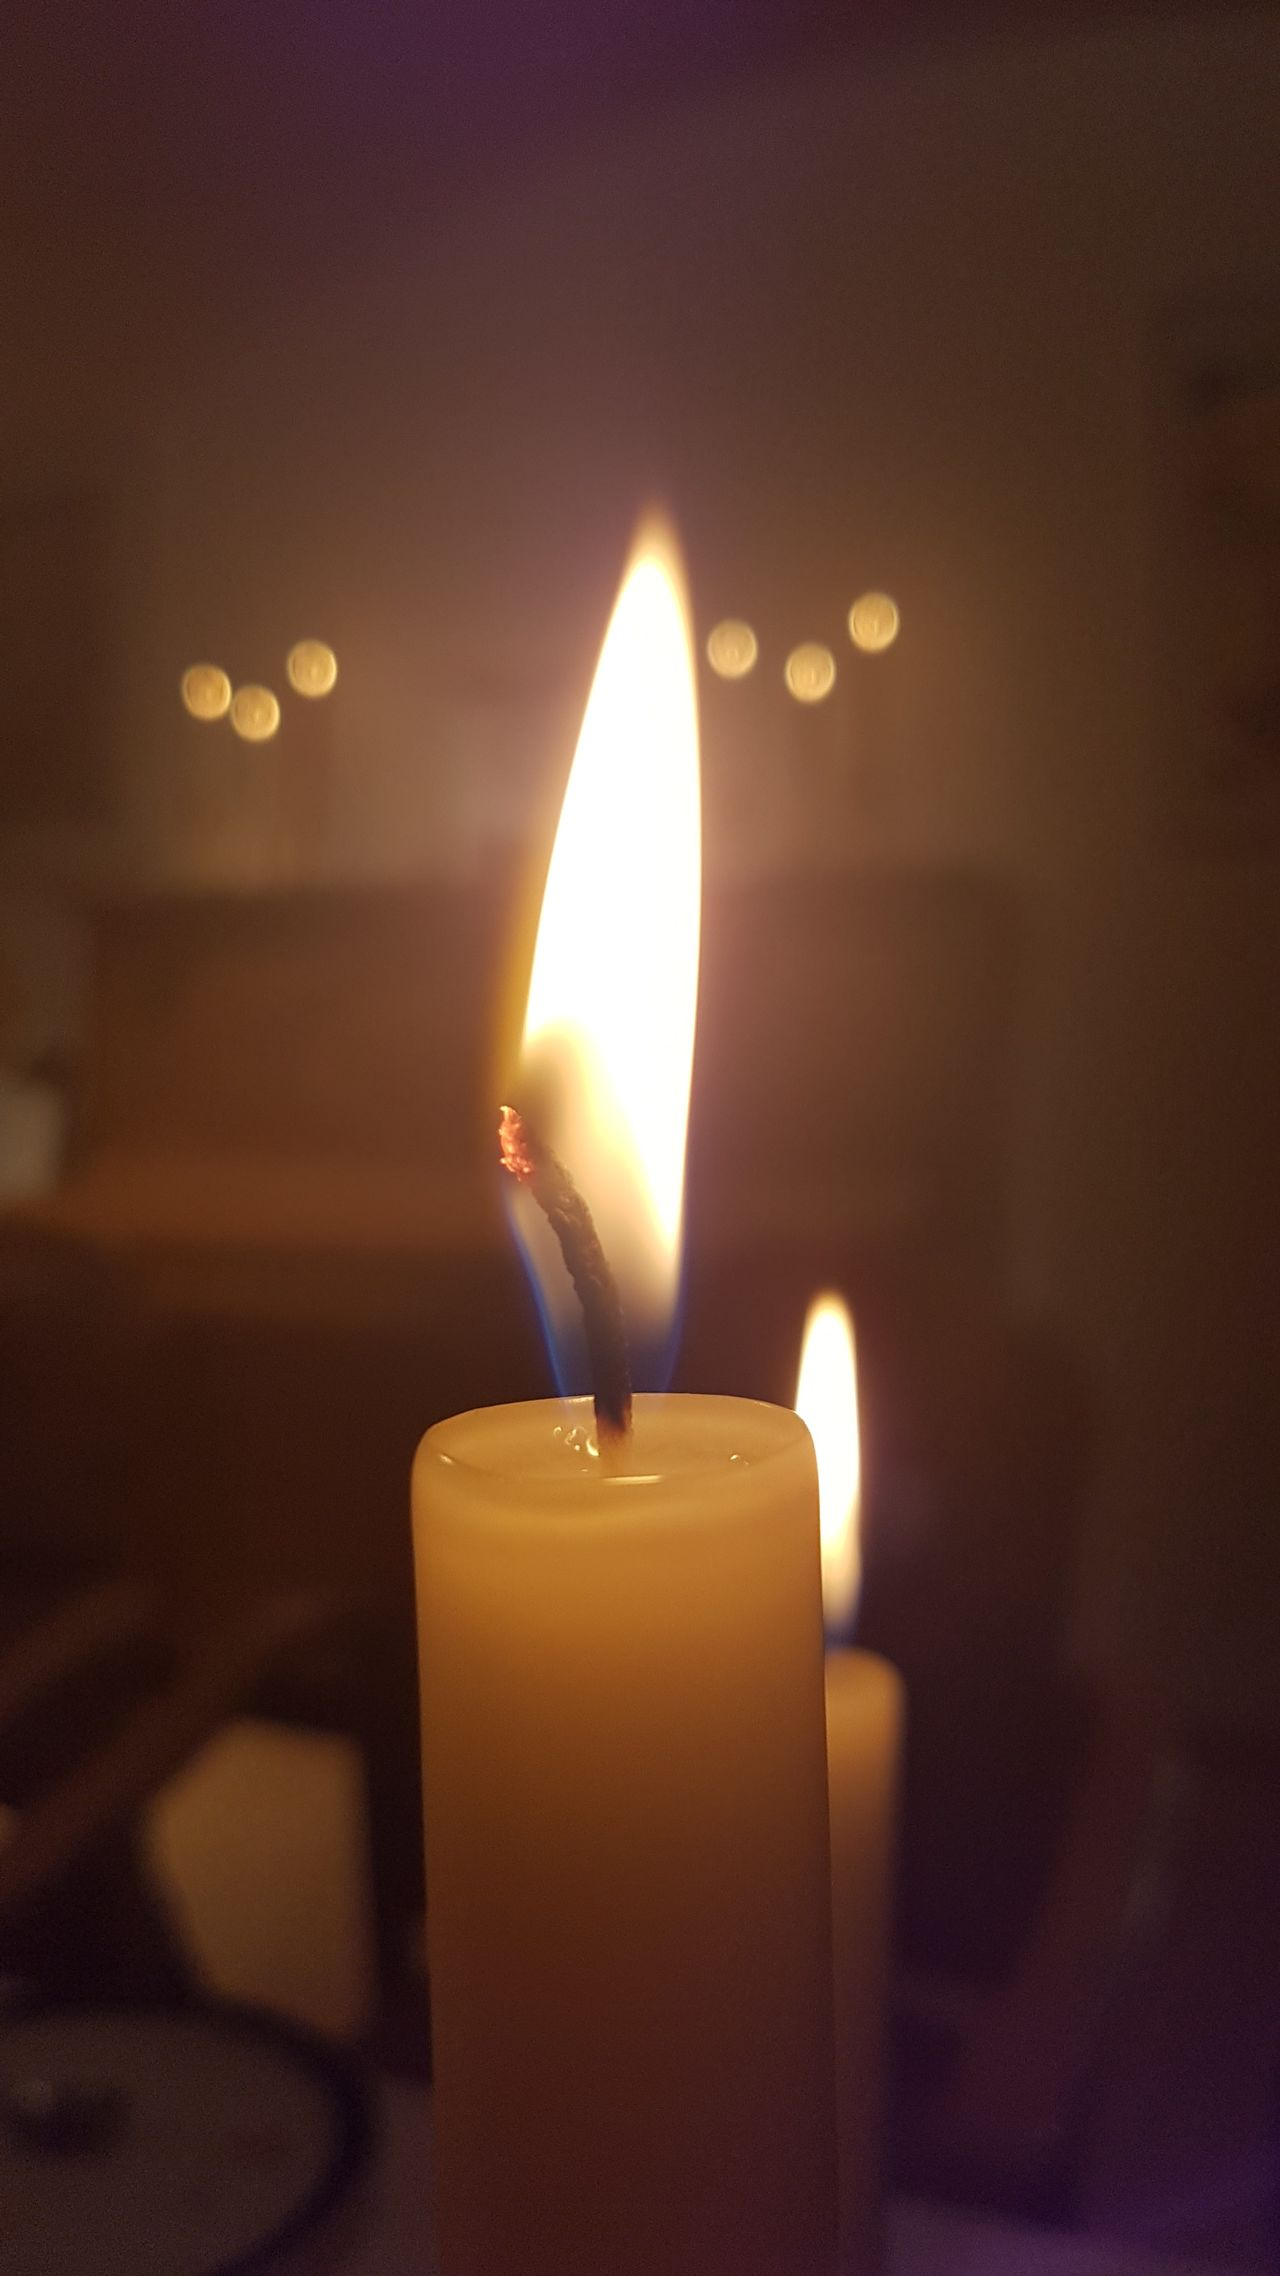 Candle Candle Flame Candle Light Candlelight Light